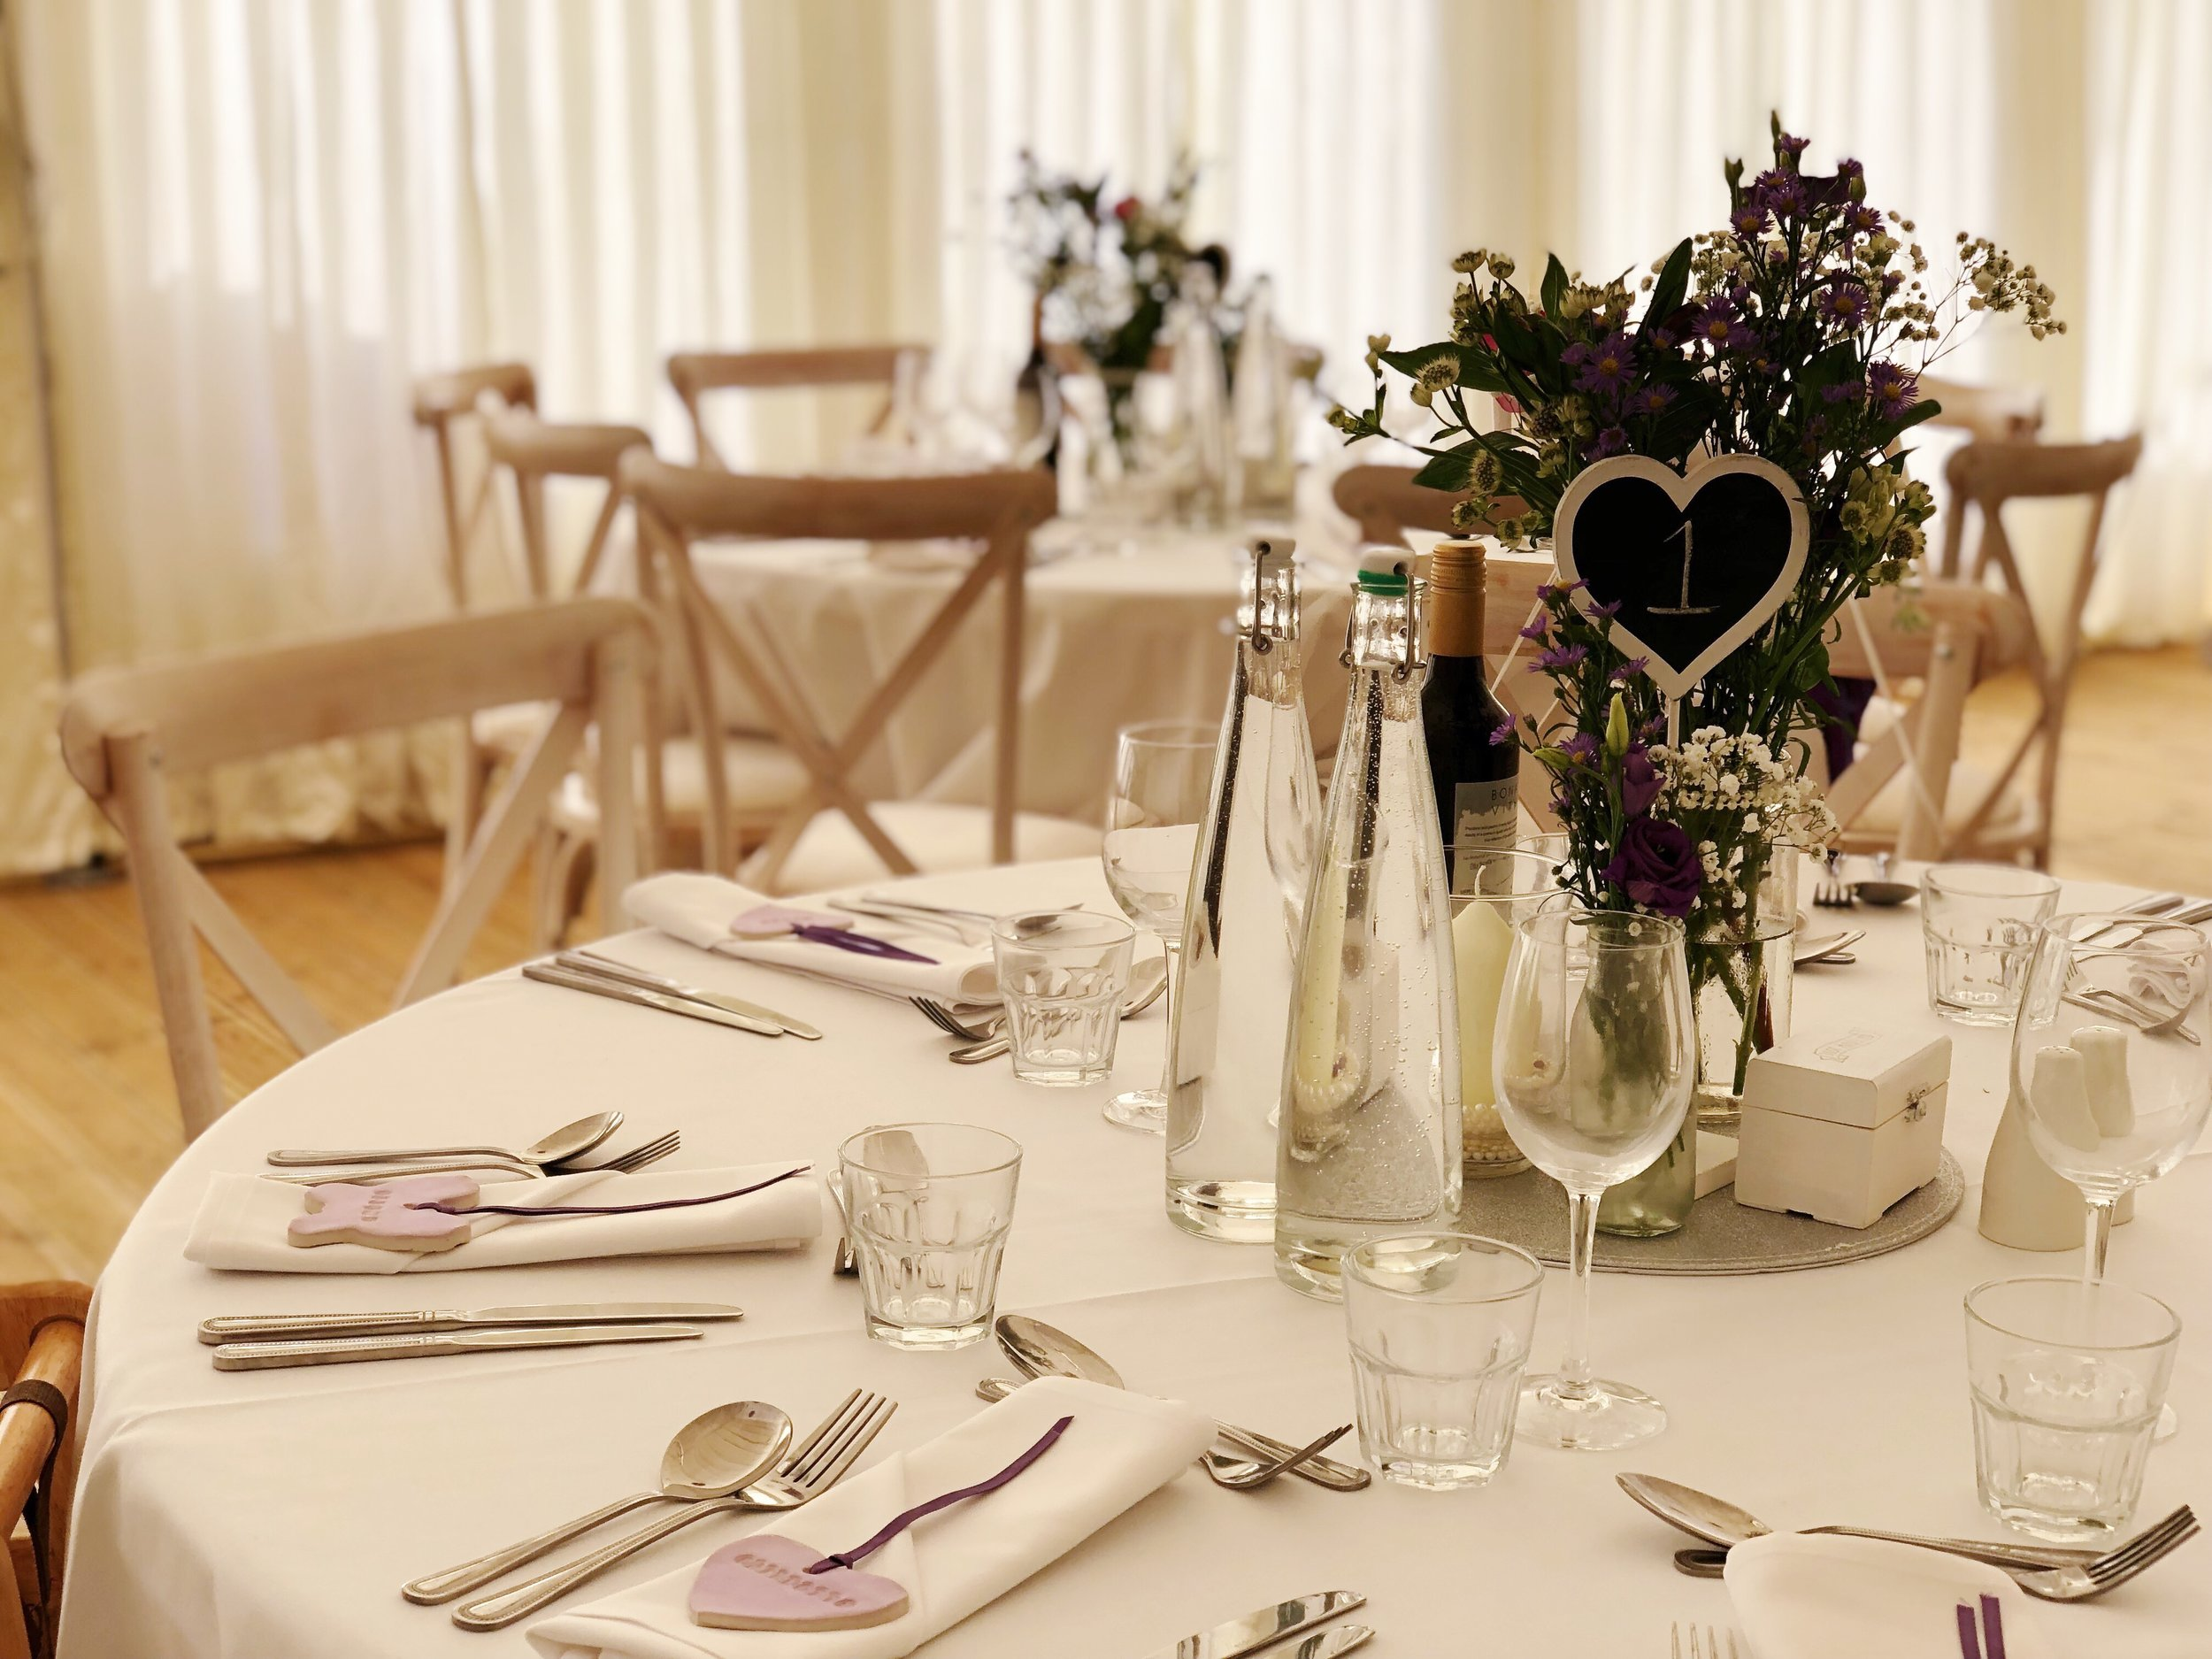 The wedding breakfast - Choose three courses from our Bronze, Silver or Gold menu in our fully heated garden marquee